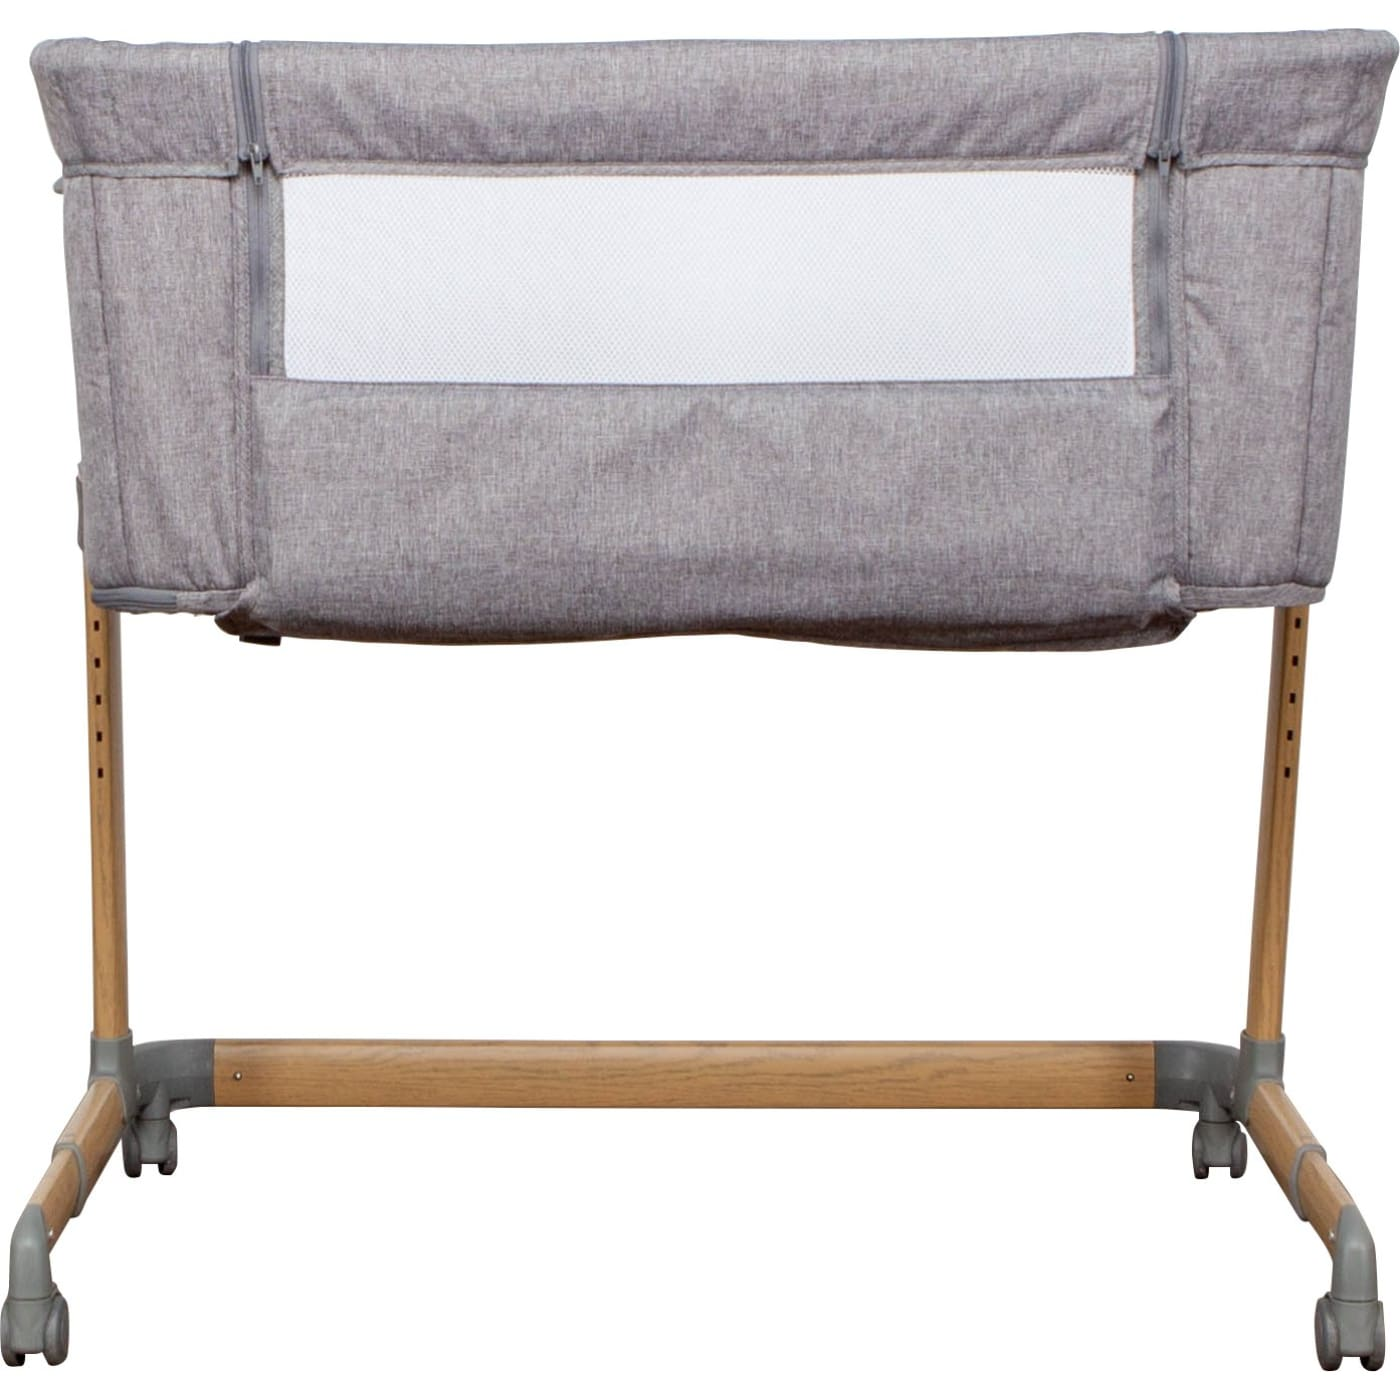 Grotime Dawn Bassinet/Bedside Sleeper - Grey - NURSERY & BEDTIME - BASSINETS/CRADLES/CO-SLEEPERS